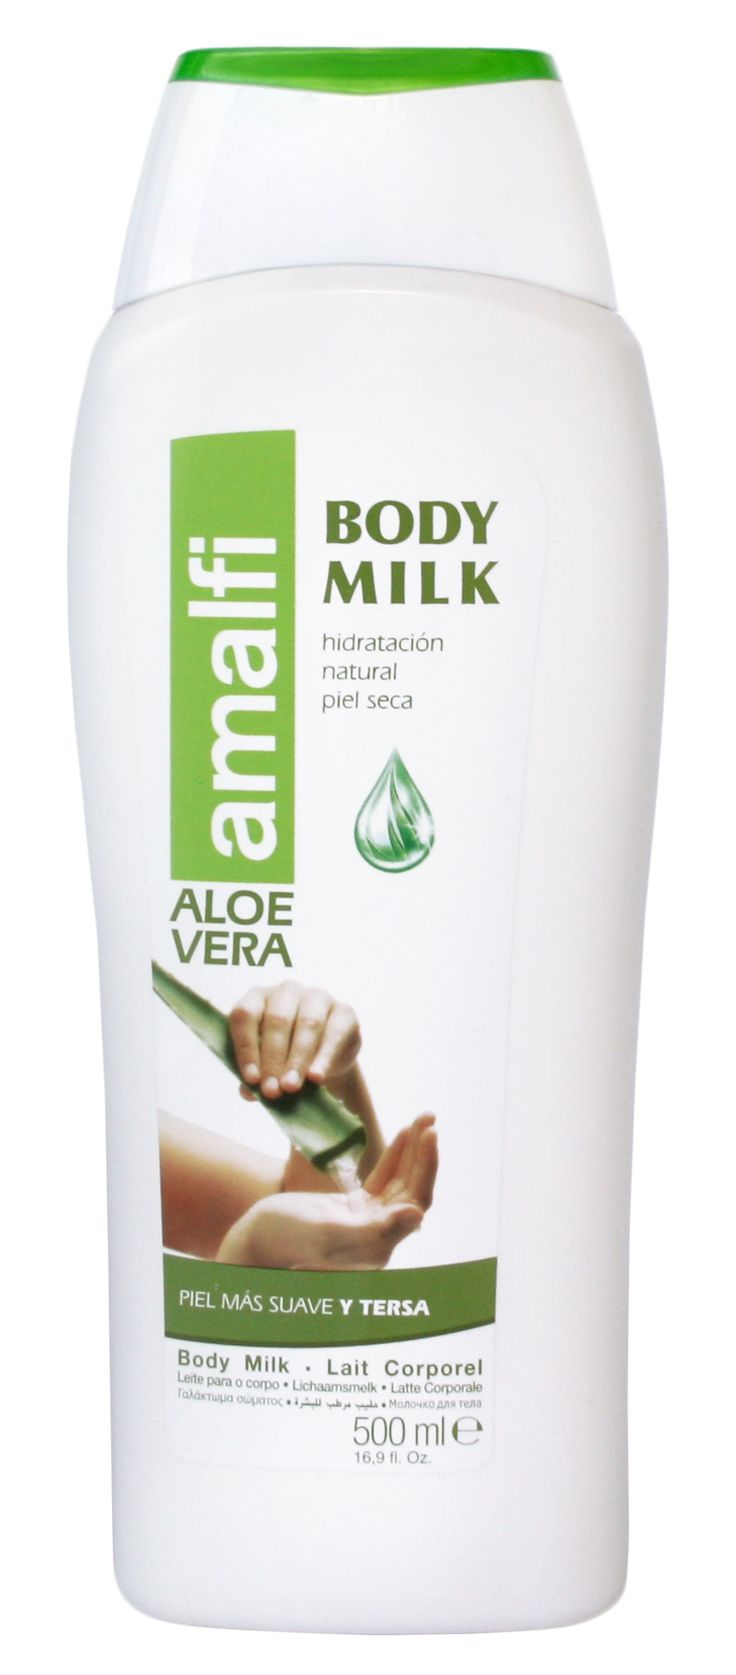 Aloe Vera - Body Milk - 500 ml - 6 €